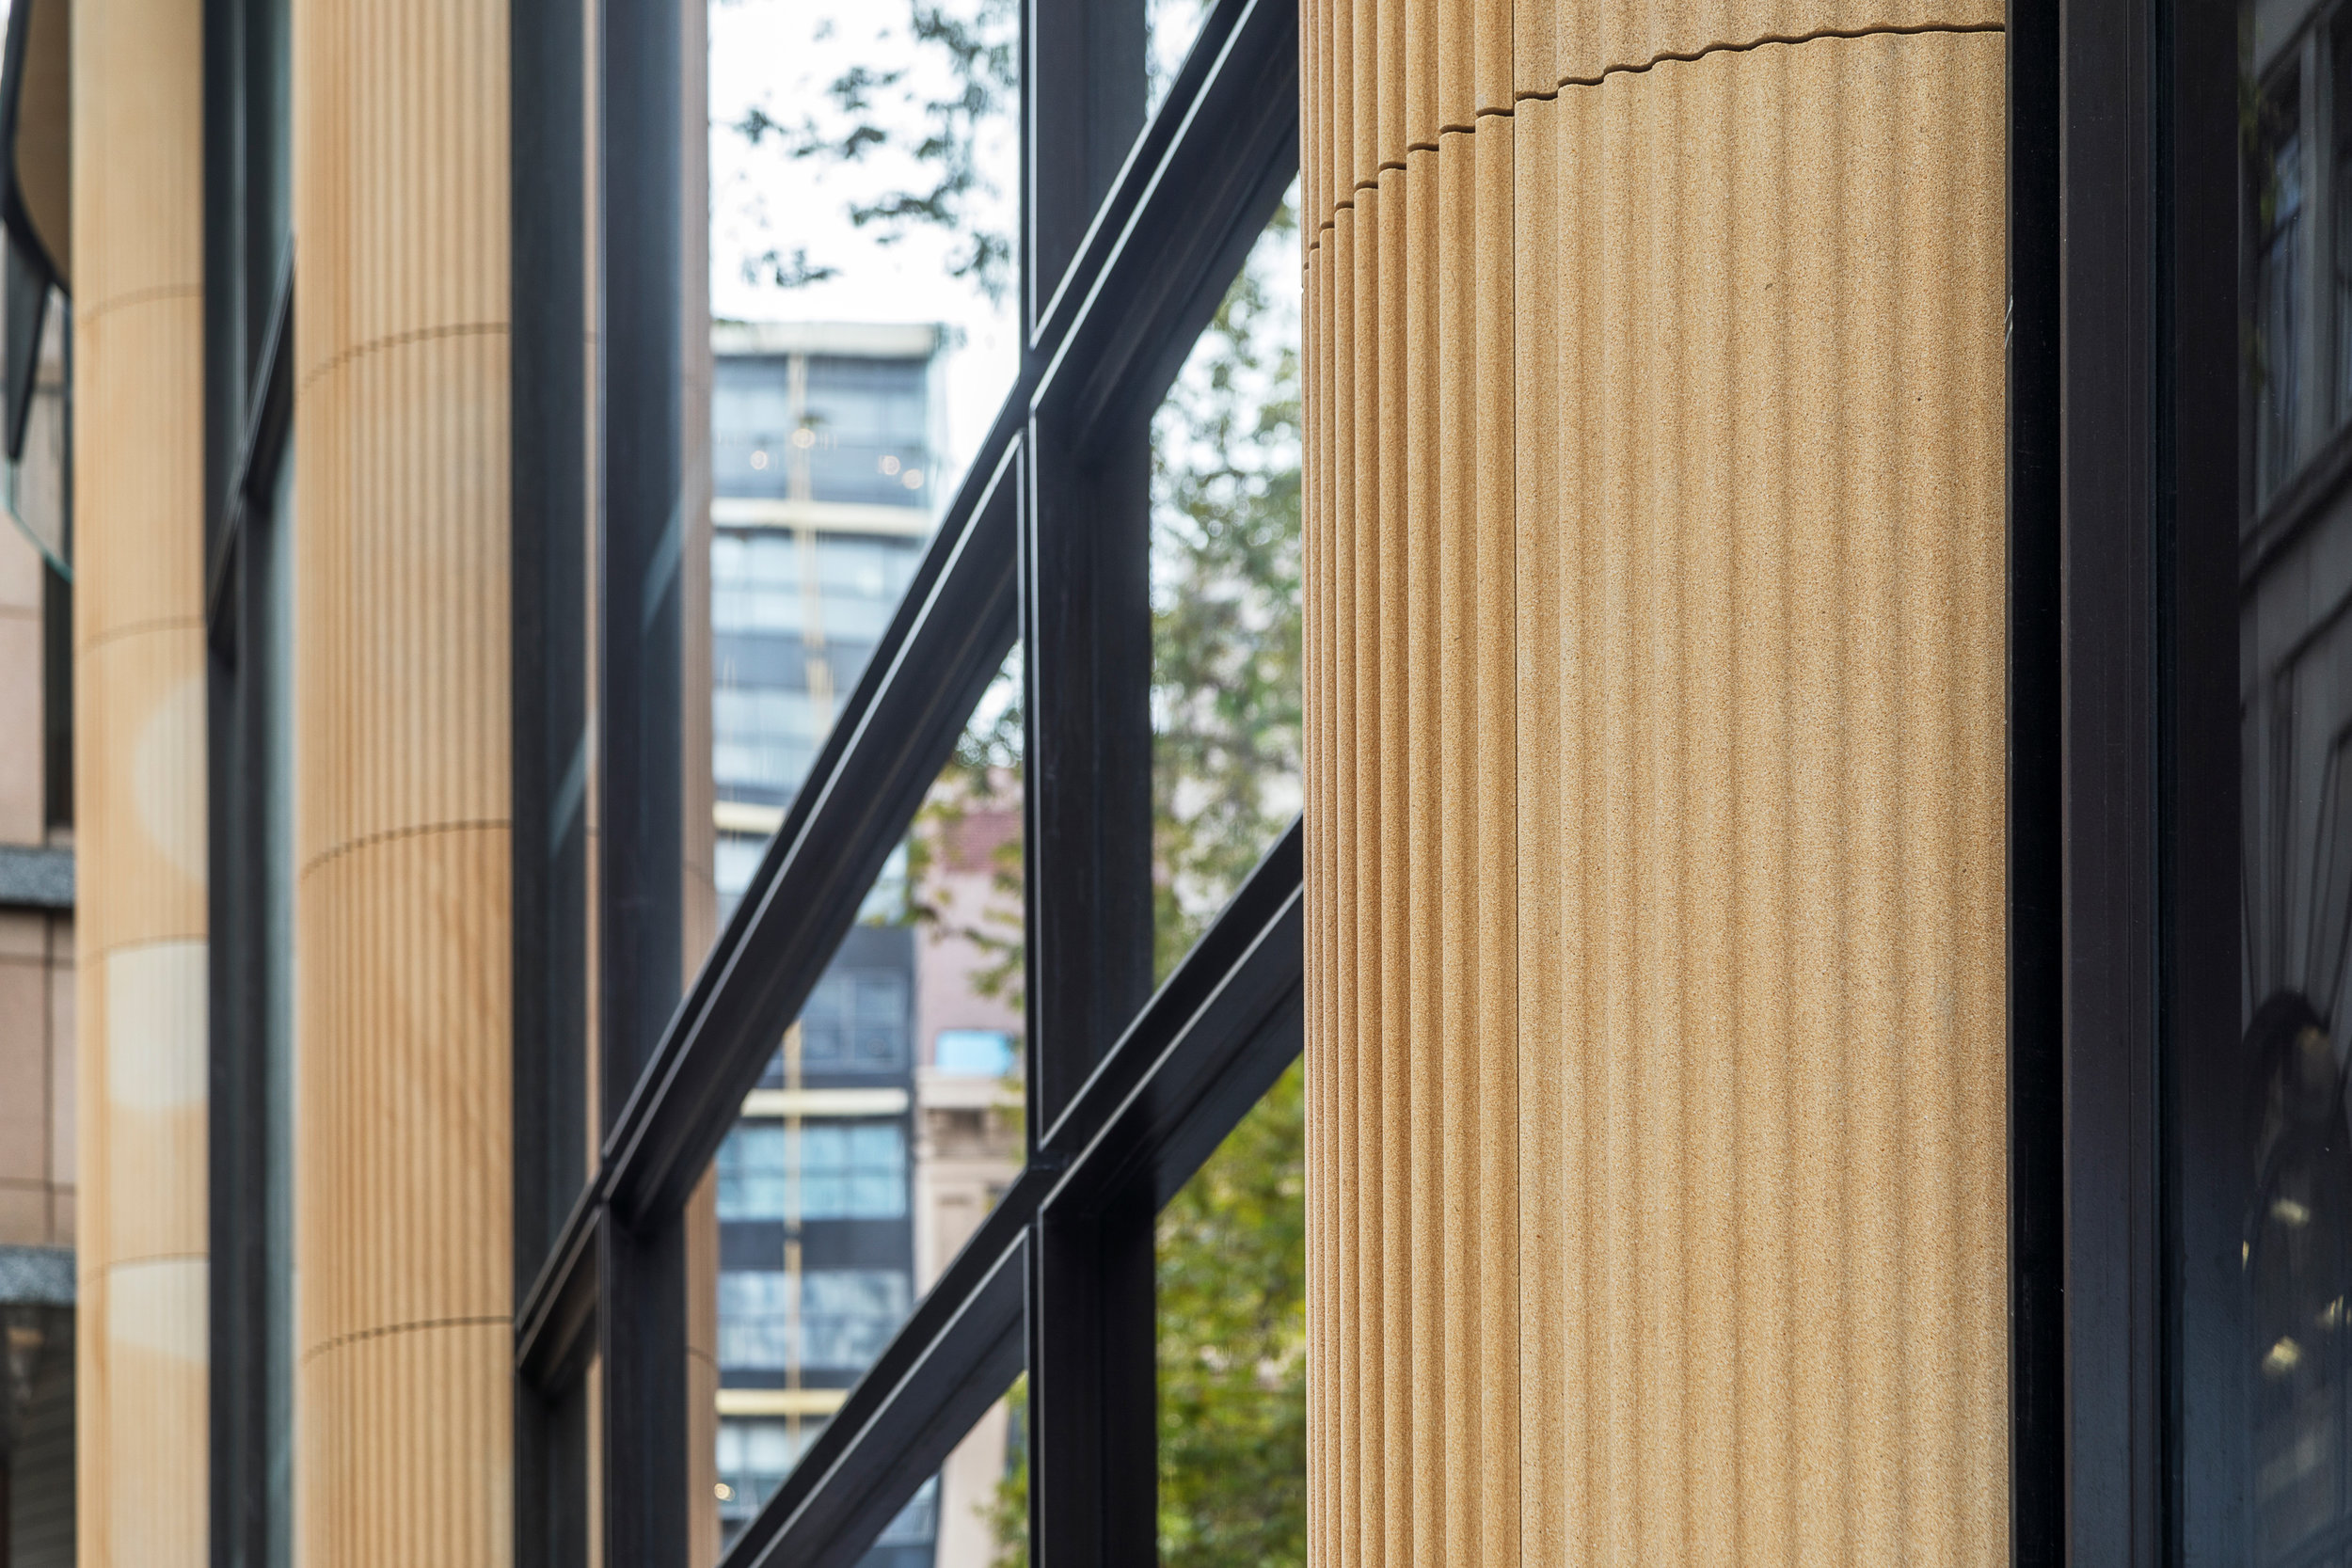 33 George St Sydney- George St Yellowblock - profiled fluted columns and sawn cladding (4).jpg